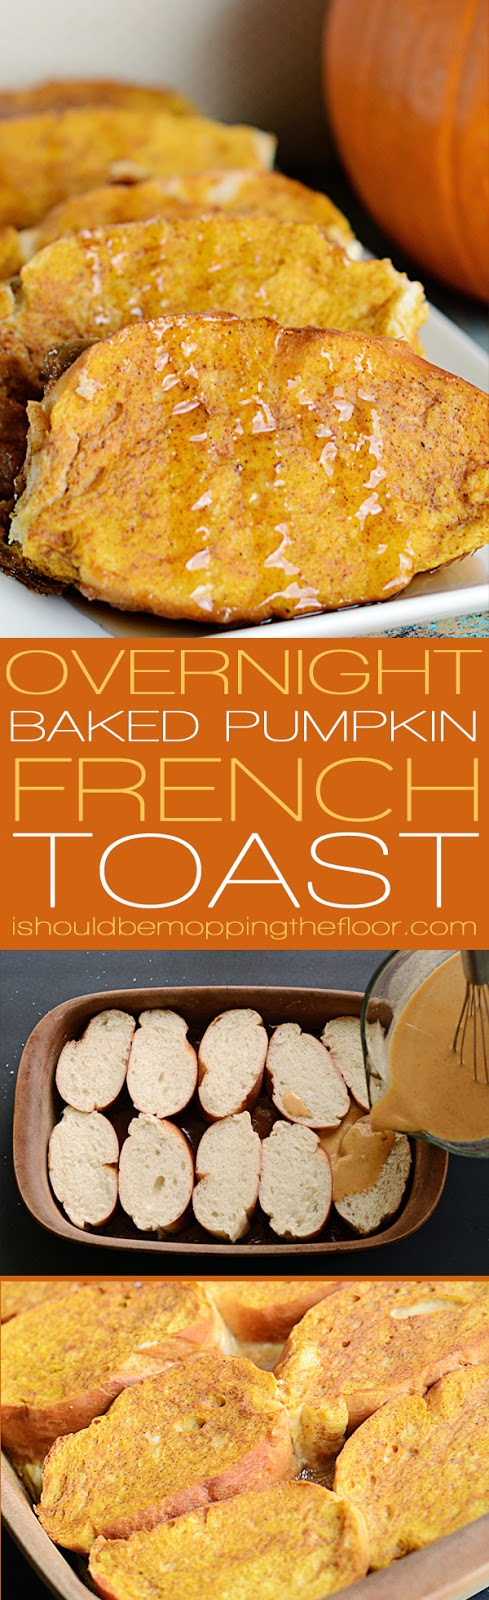 Baked Pumpkin French Toast: once you try this overnight French toast ...